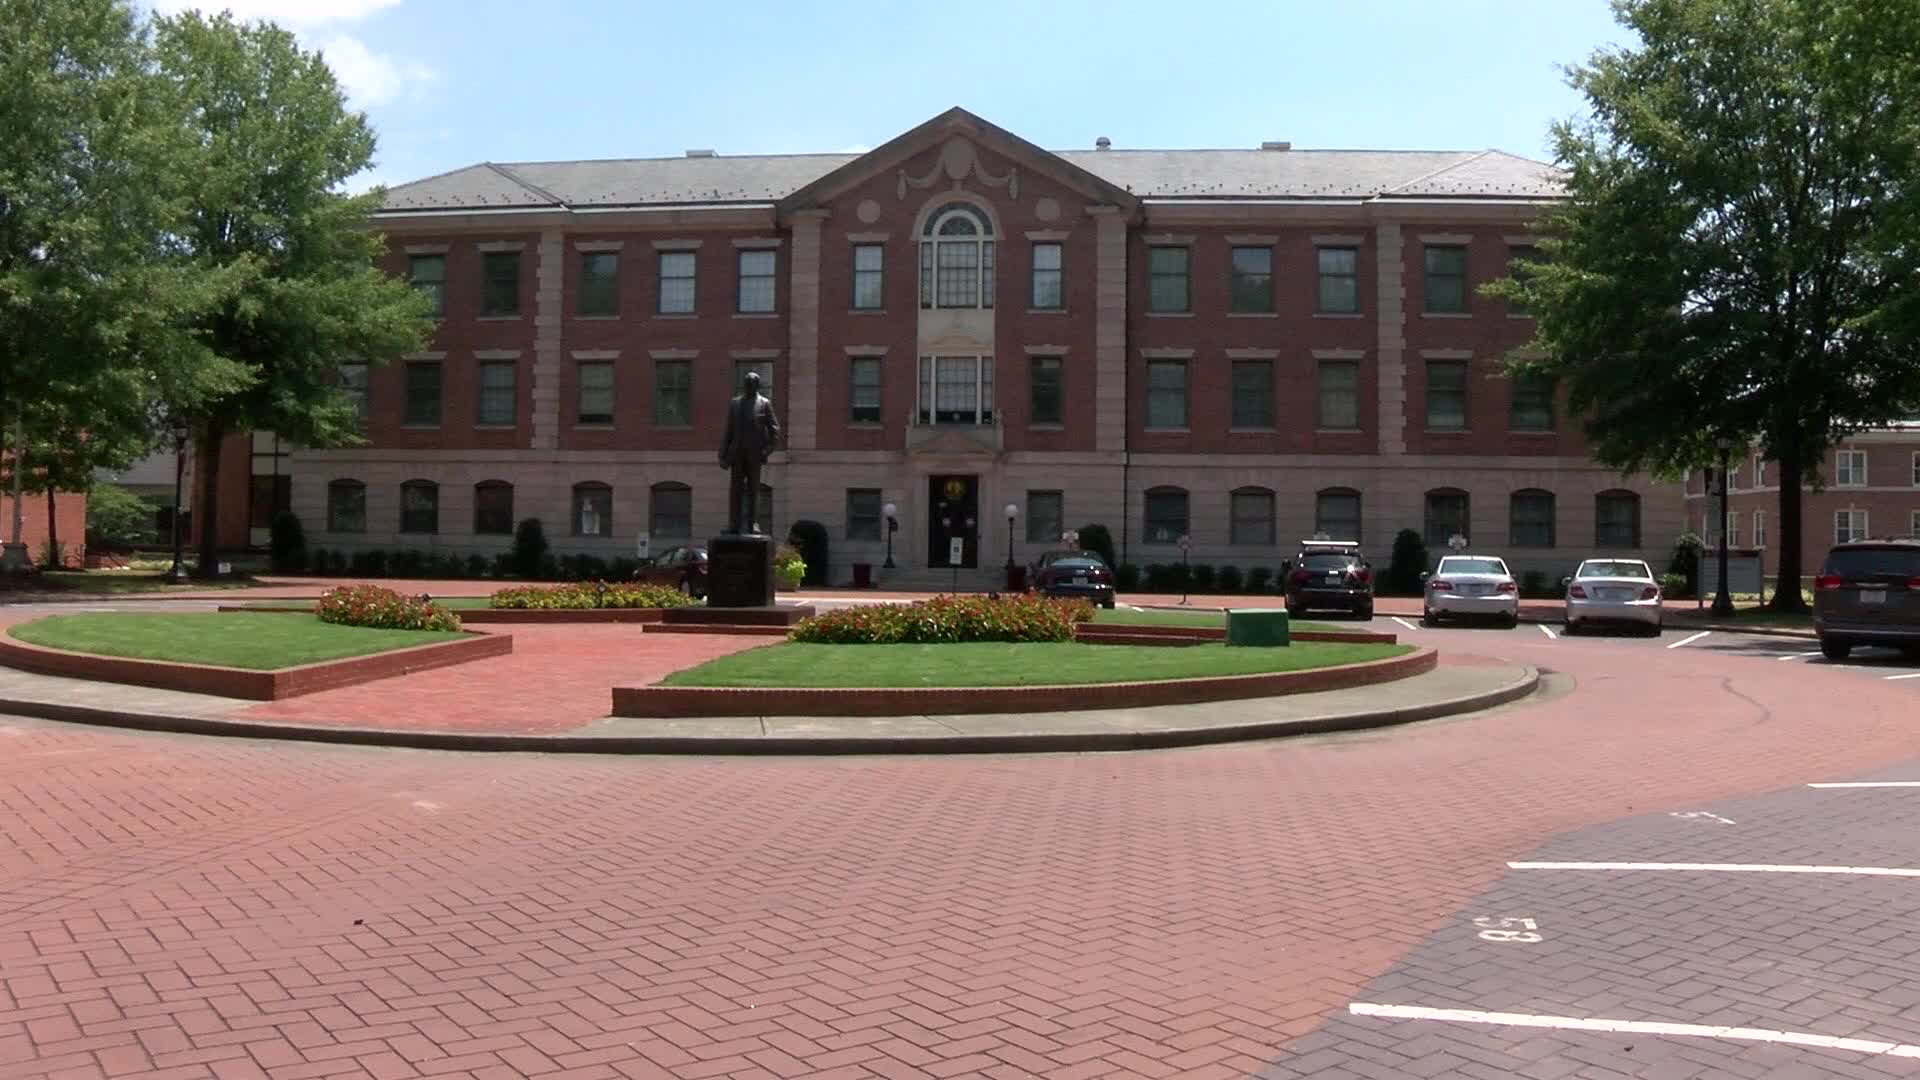 Faculty asks UNC System to move all classes online during COVID-19 pandemic